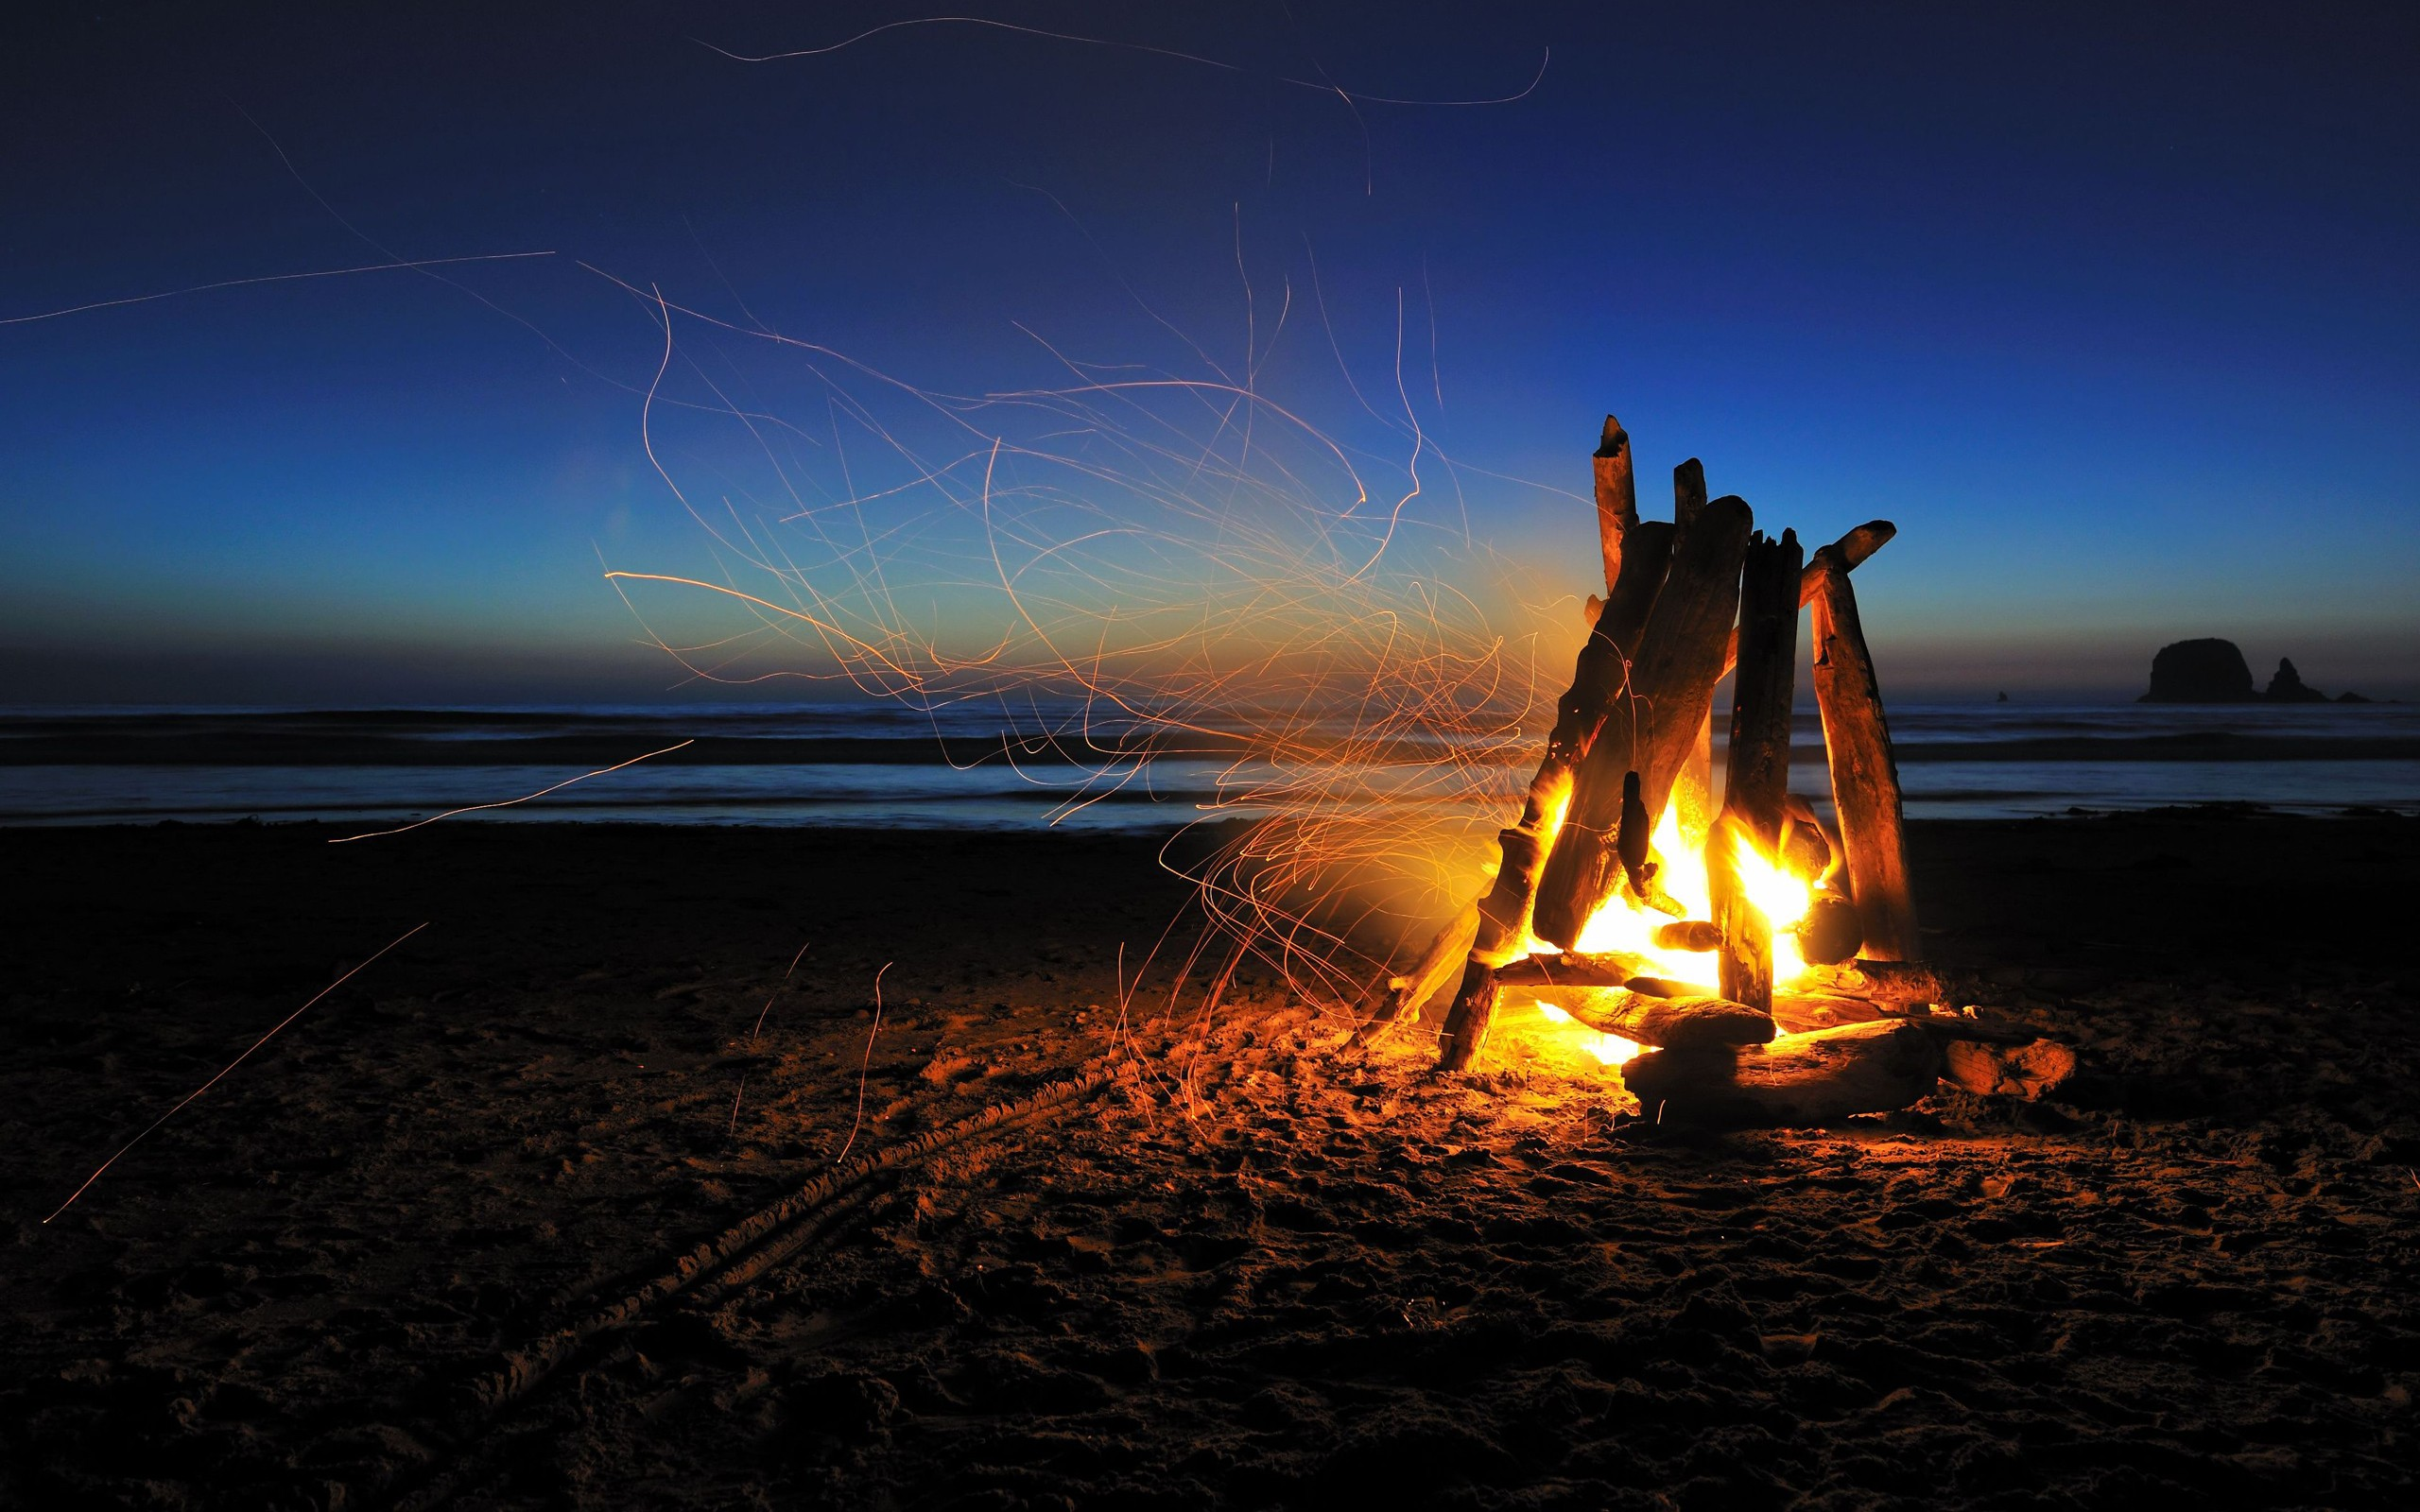 Fire Beach Night Timelapse Sparks Camp Camping wallpaper 2560x1600 2560x1600